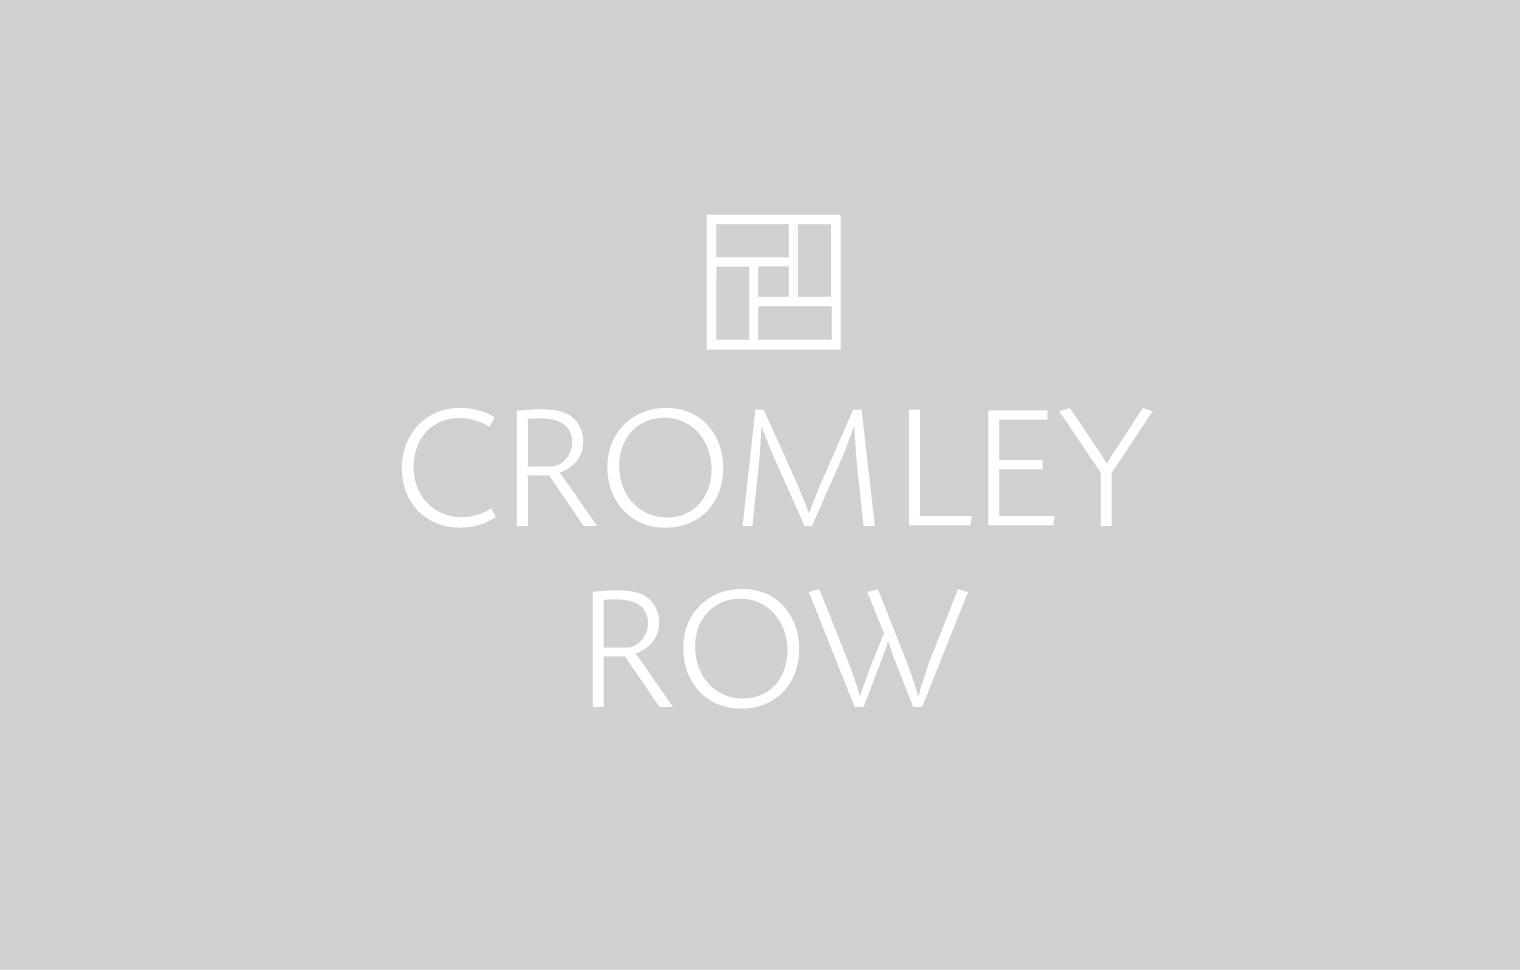 Logo for Cromley Row.